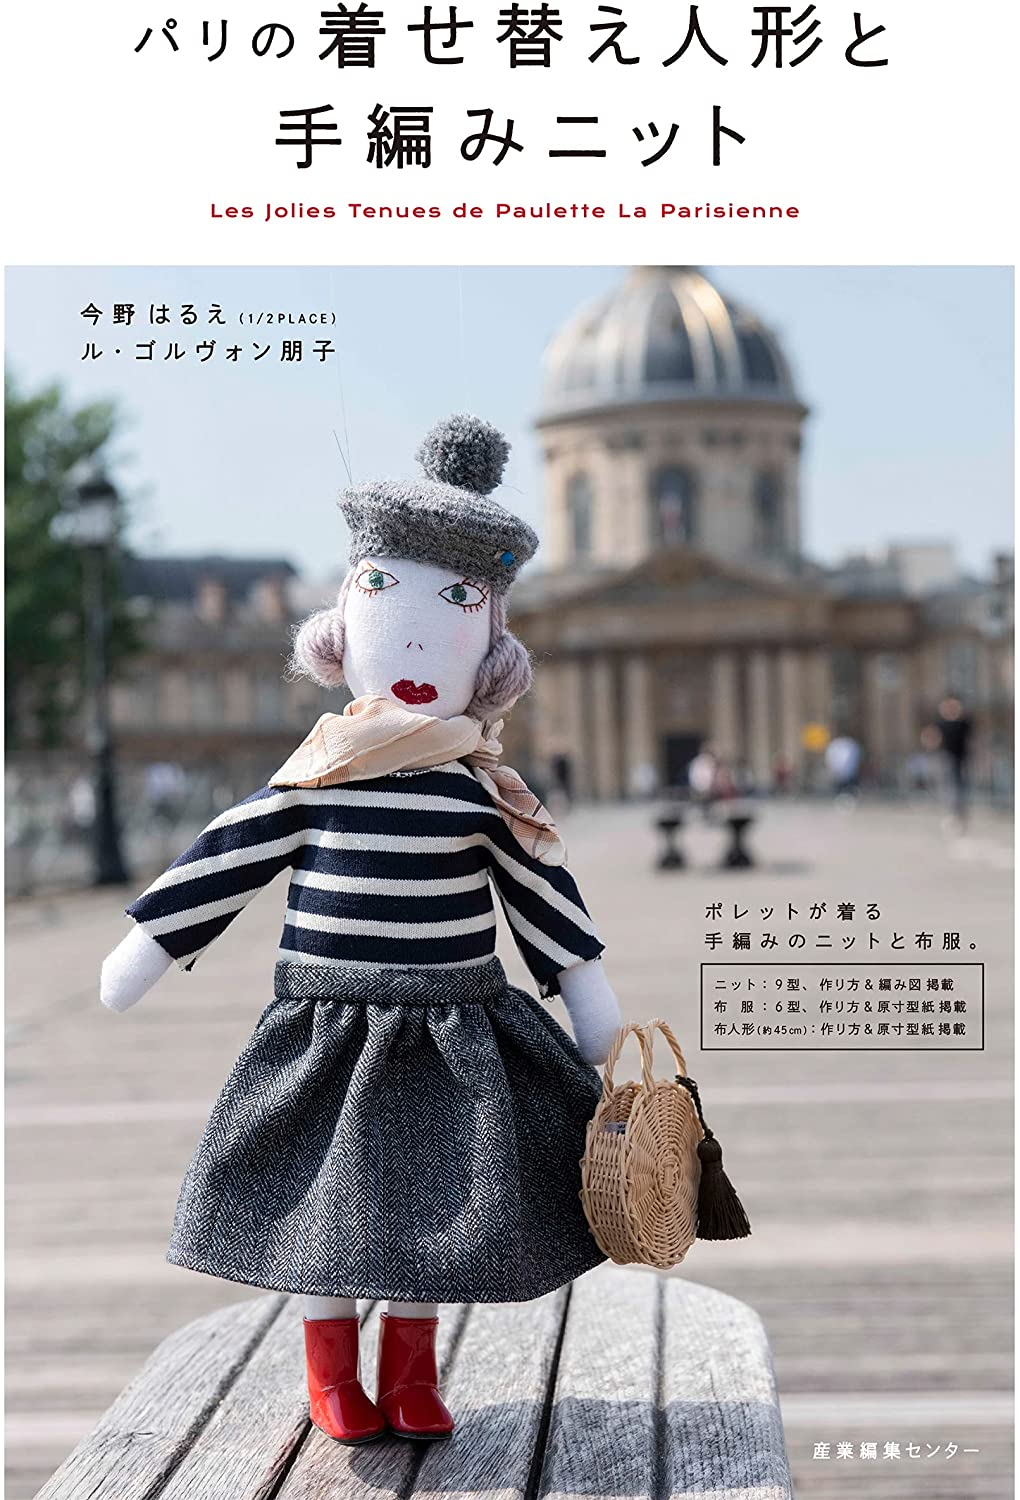 Parisian dress-up dolls and hand-knitted knits